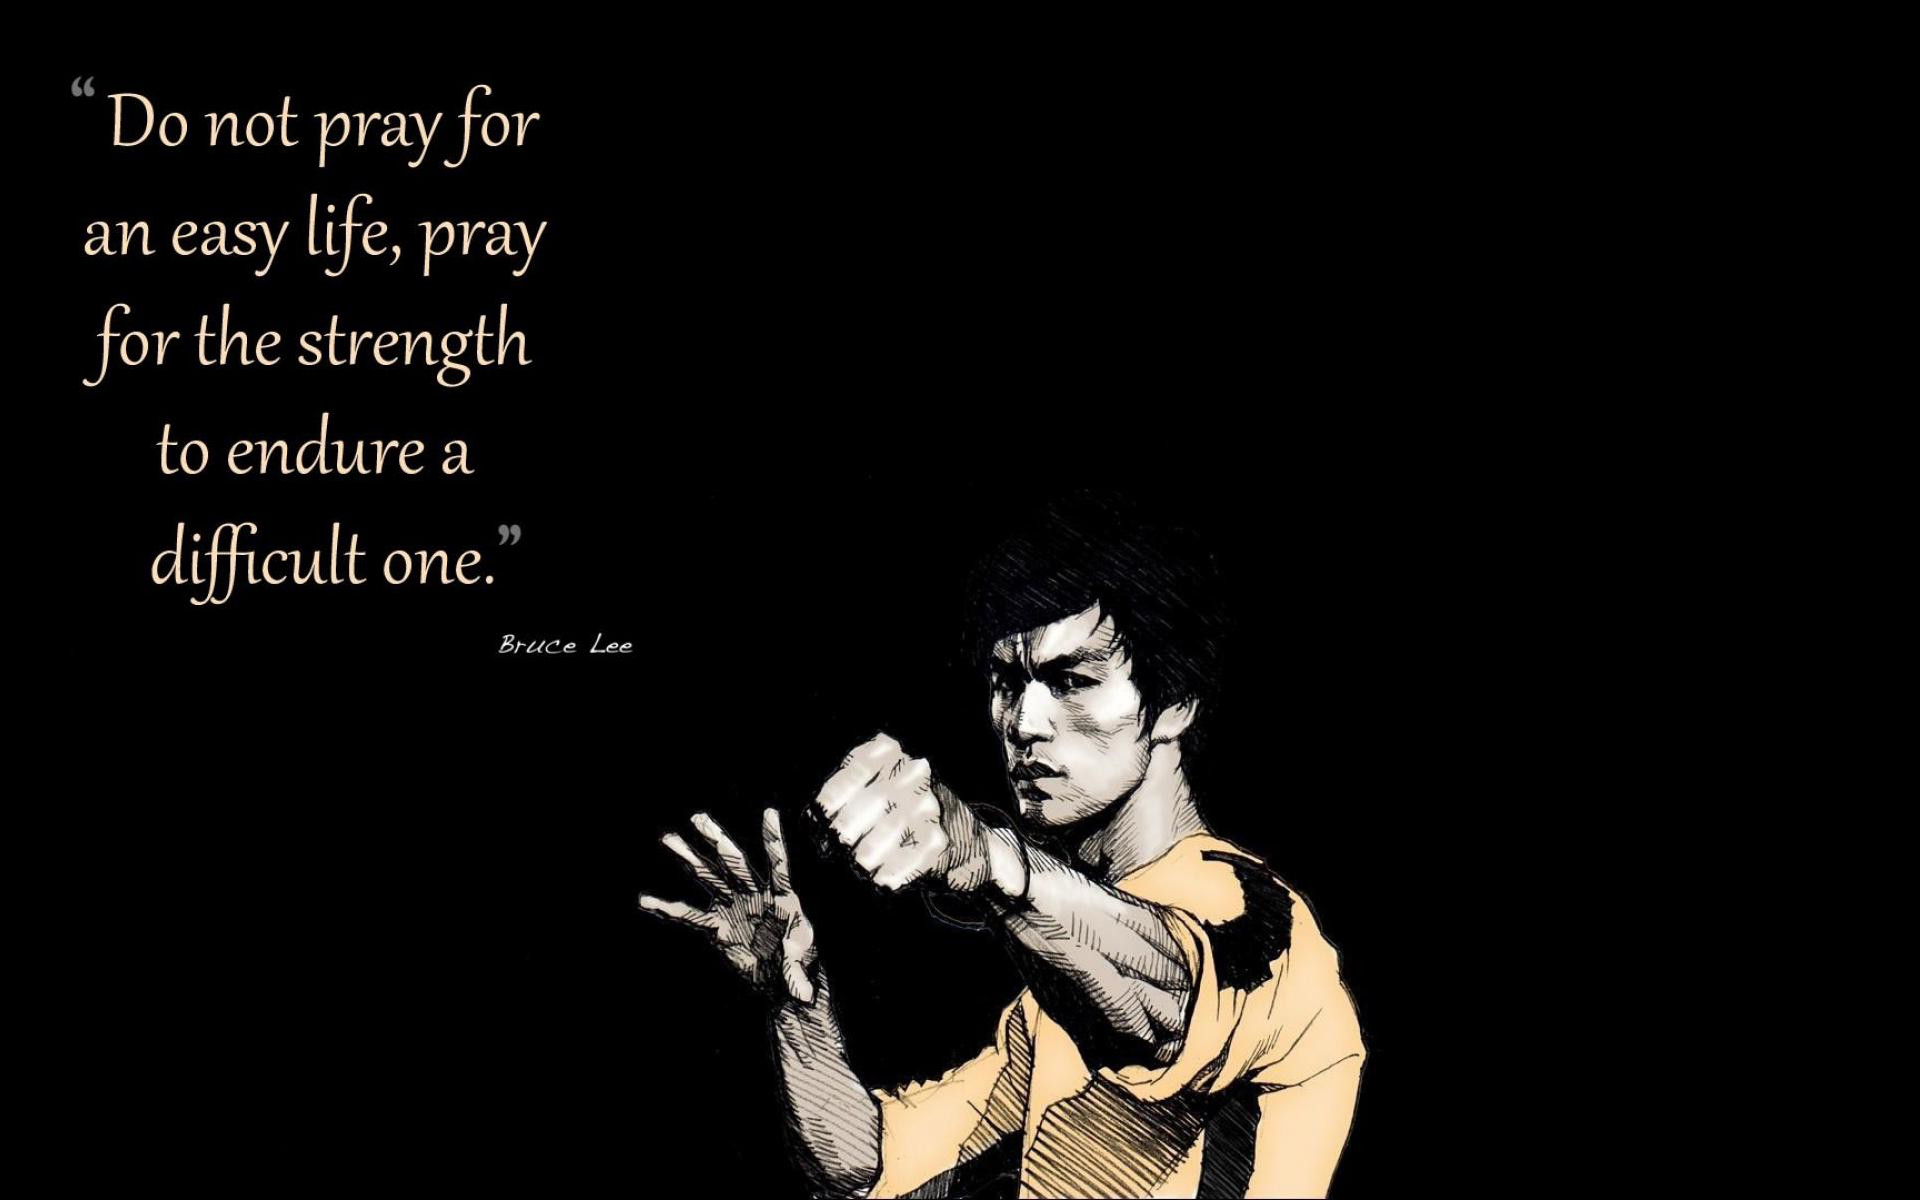 Bruce Lee Quotes Facebook Cover Wallpaper   Do Not Pray For Easy 1920x1200